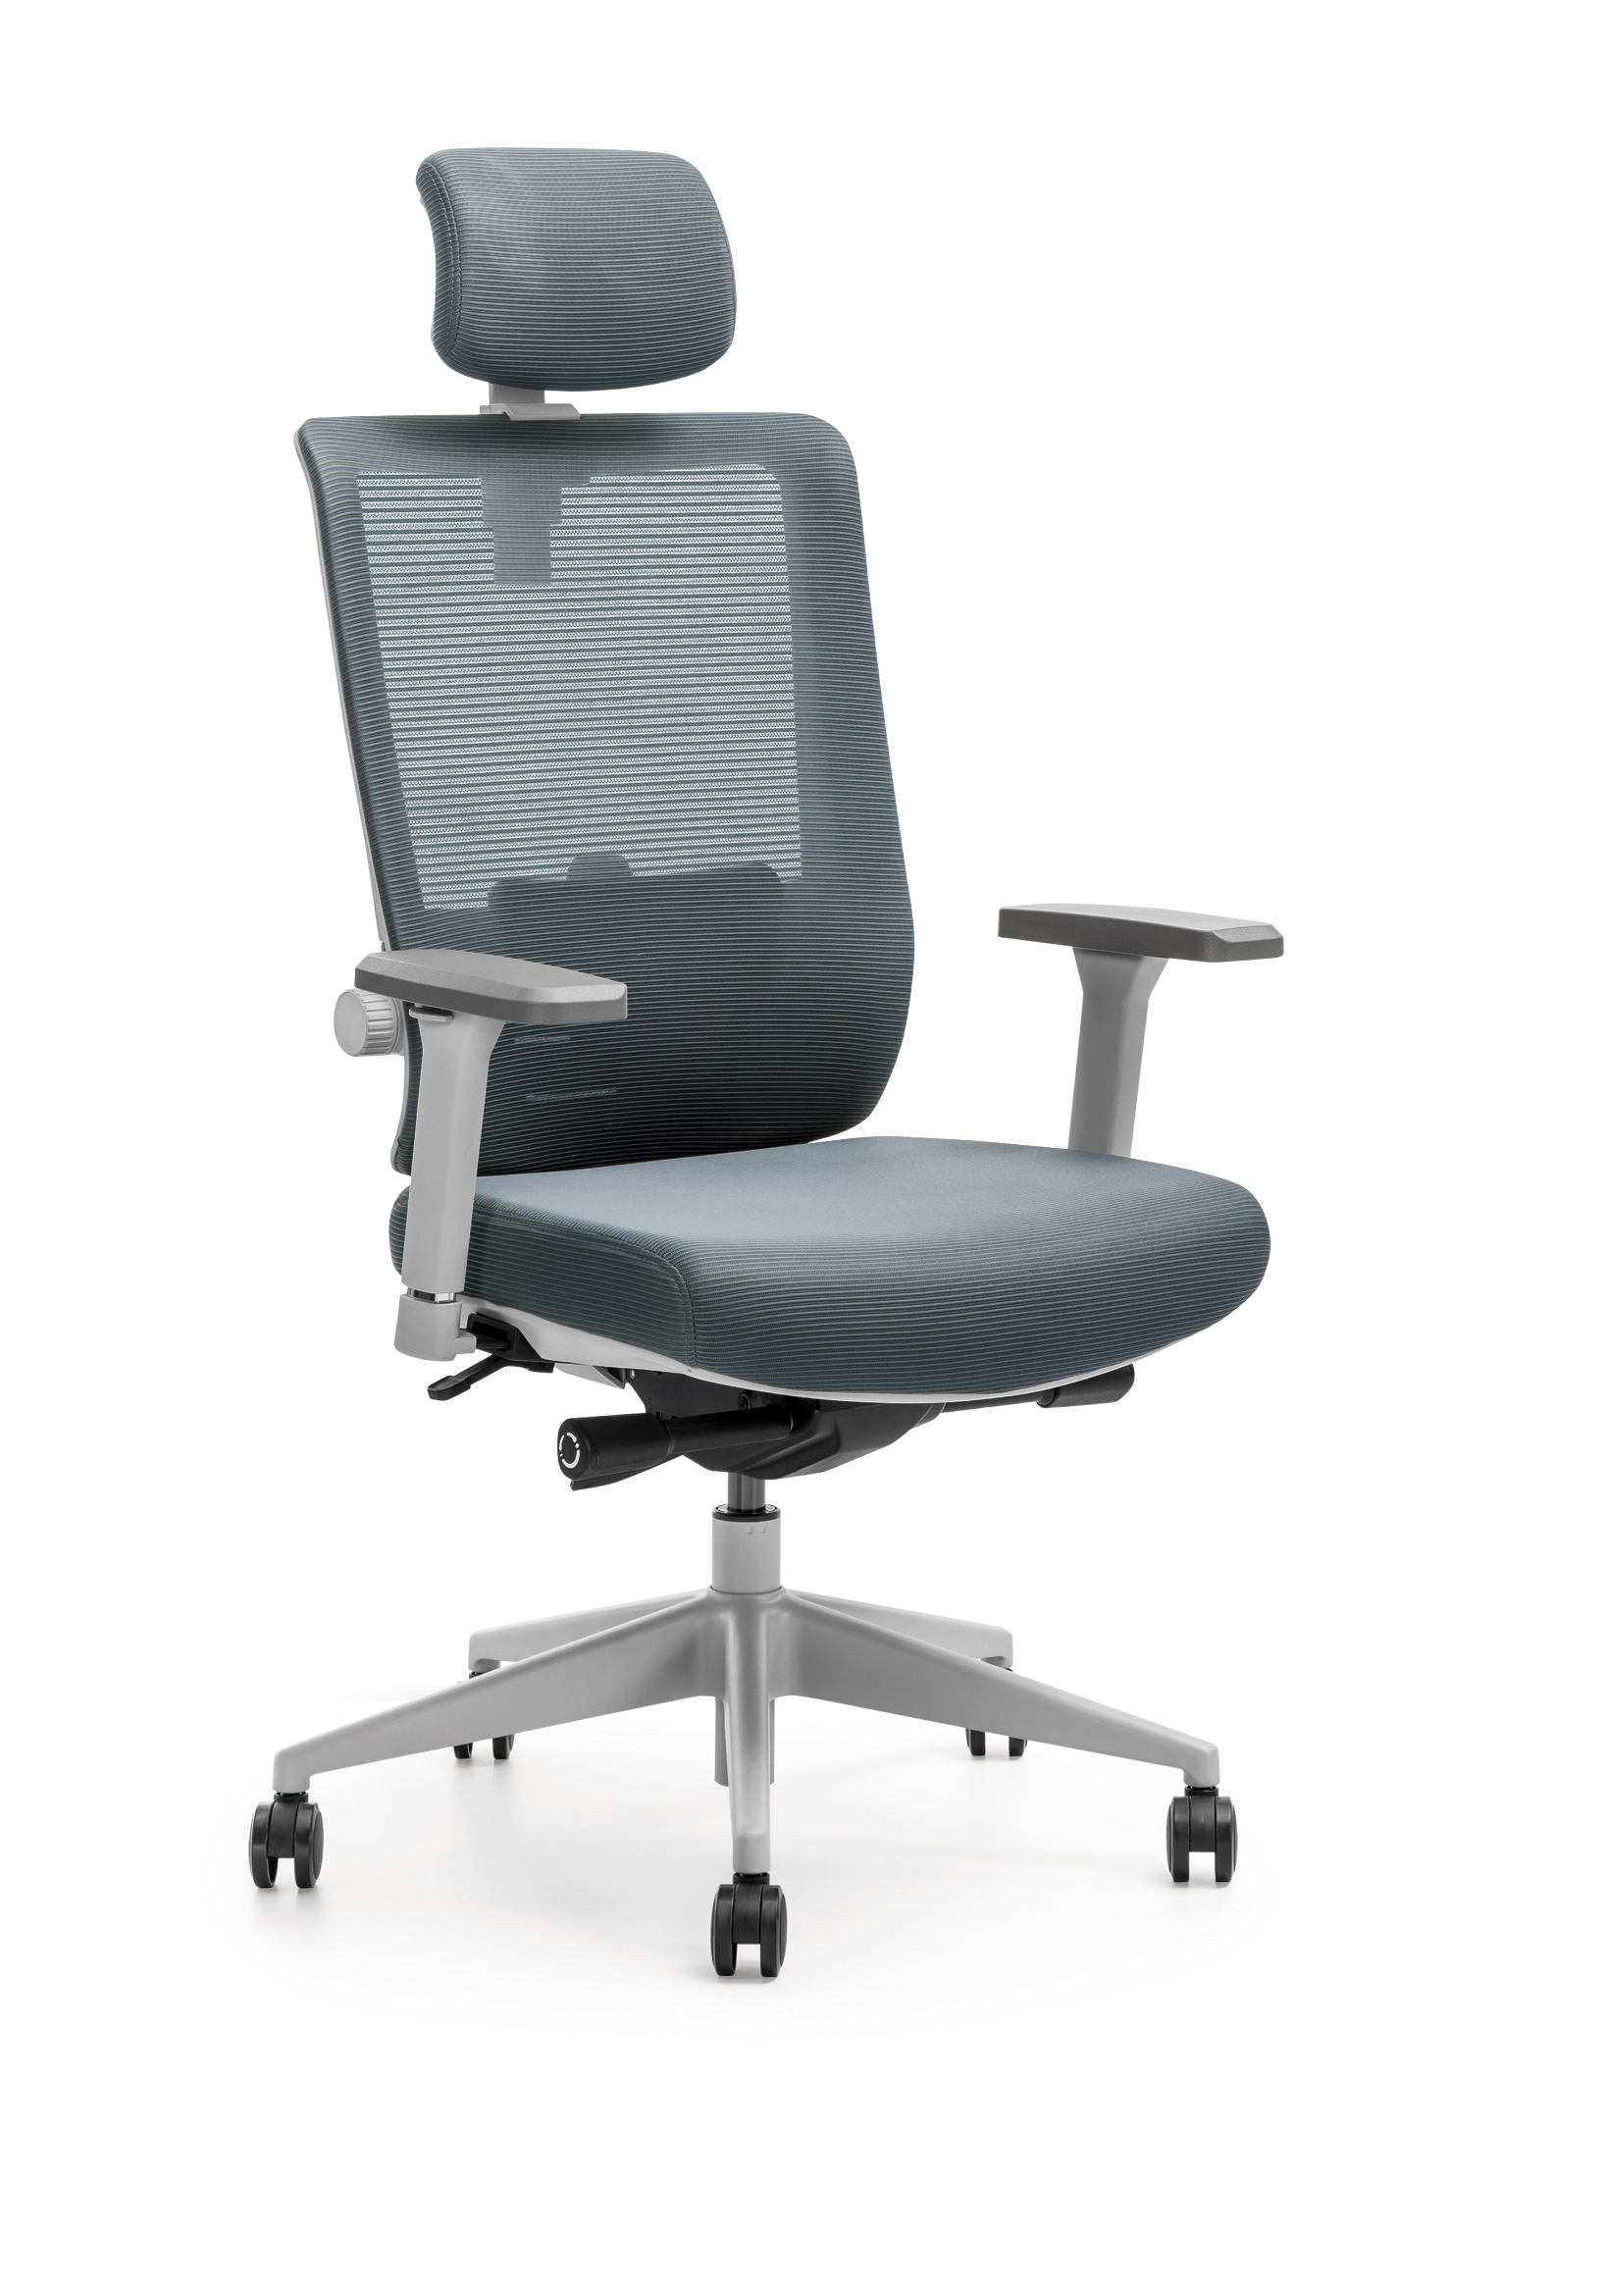 HUASHI Multifunctional Computer Chairs For Sale